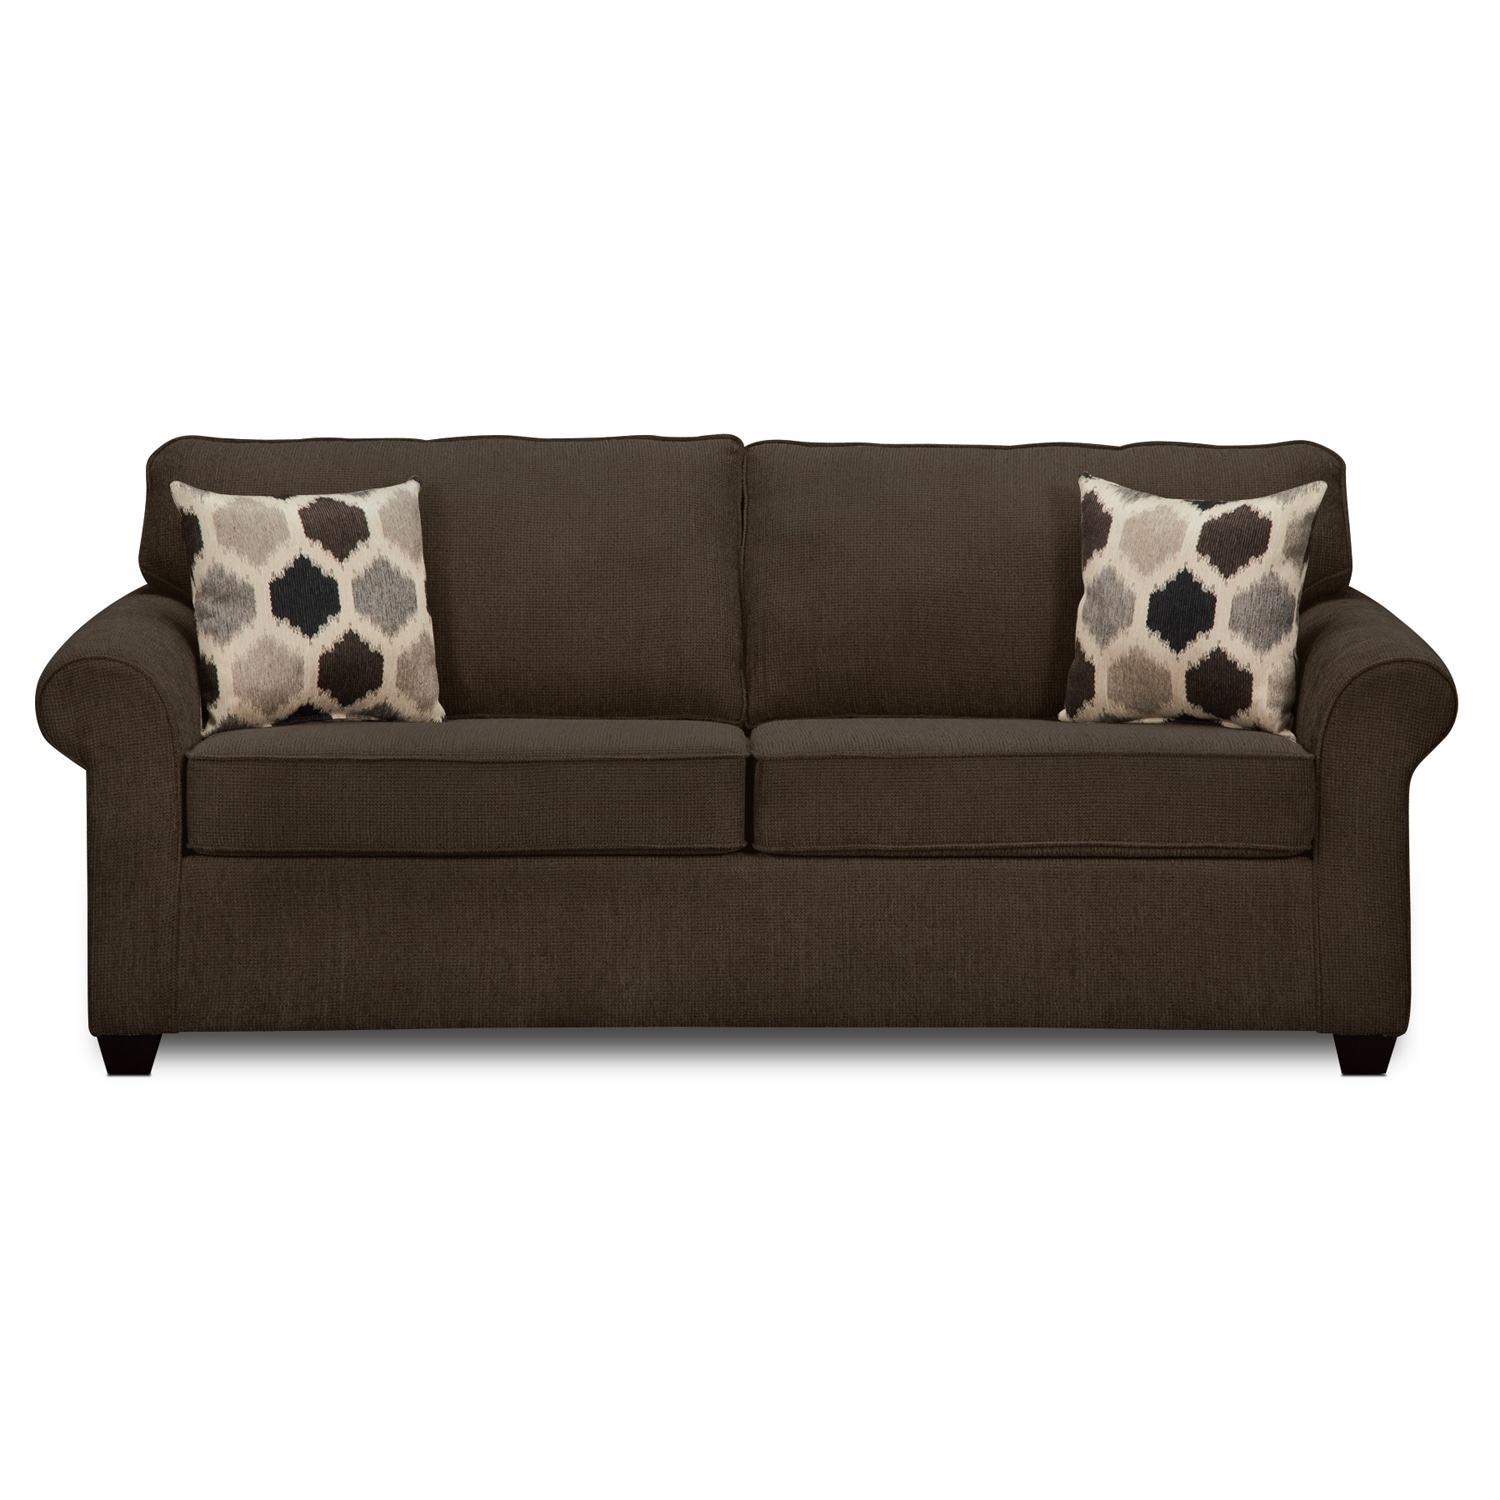 Fletcher ii upholstery queen sleeper sofa value city for Sofa bed value city furniture